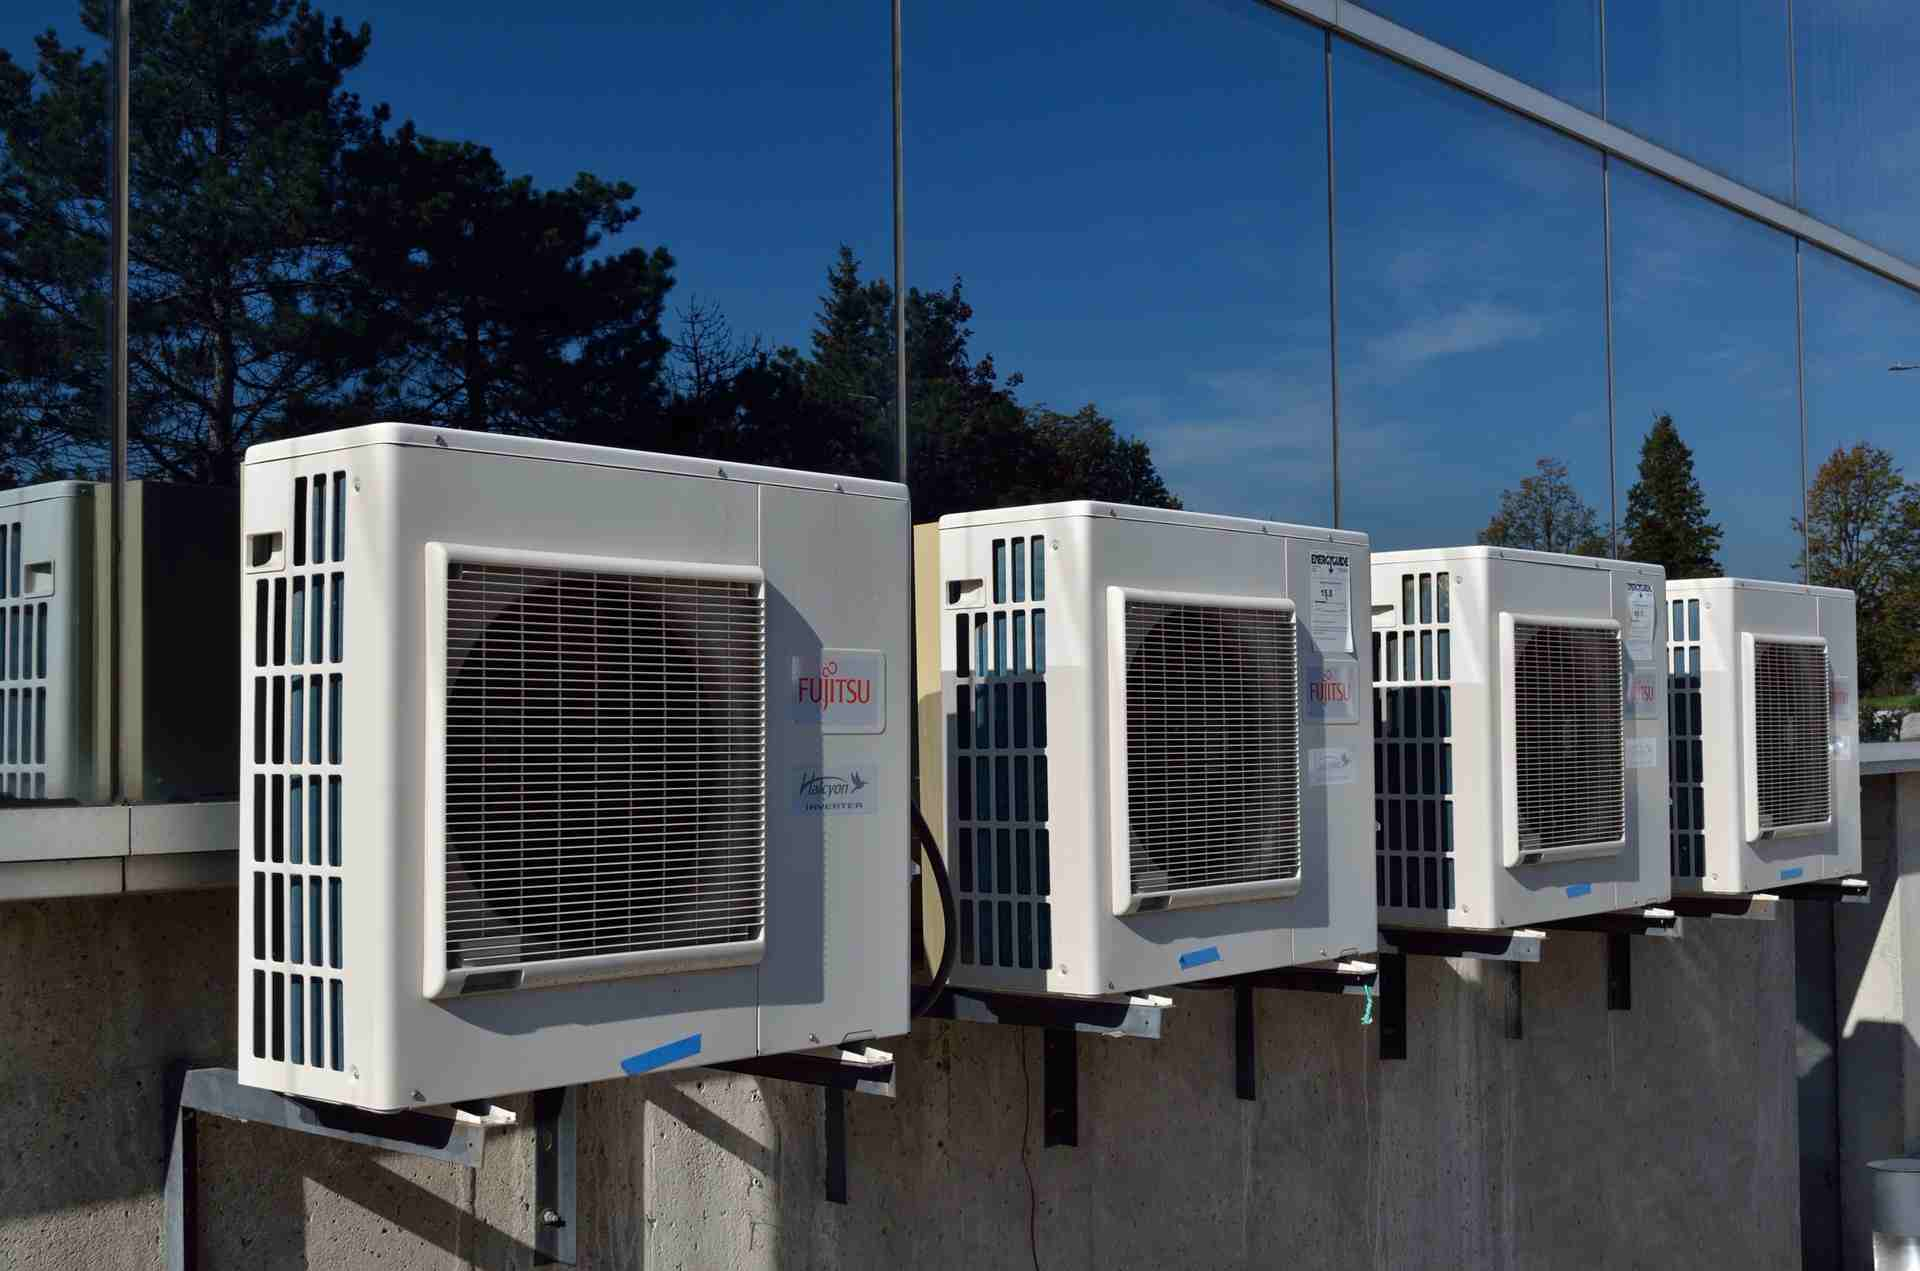 Here are 4 steps to prepare your HVAC and guarantee a cool summer:  1.Clean in and around both your indoor and outdoor units Depending on your region, you may not have seen the ground since November (or maybe even October). Maybe you were good last fall and picked up the sticks and leaves, but that didn't quite spare your HVAC from the elements. Clean any twig, leaves, acorns, or any other debris that might've found it's way in the wrong places. Also be sure to clear any vegetation growth near the outdoor unit to ensure clear airflow.     2.Replace the air filter Dust, allergens, pollution, and pollen are just a few of the impurities your air filter protects you from. Over time, your filter become less and less affective as it accumulates the impurities. You should replace your air filter every three months. Keep it clean and your air will be clean. If it is time to replace the filter this month, there's no reason to procrastinate.   3.Check your air conditioner for maintenance  I'm sure it's been a while since you've turned on the cold air. For most people, cold air has been the enemy for months. Now it is time to reconcile your disdain and appreciate all of the good things your air conditioner will do for you throughout the hot summer. Turn your air on for a few minutes to make sure everything is in good shape. If you don't notice a change in the temperature, you may need to arrange for some repairs.  4.Seal your ducts and any drafty areas There are few things worse than the precious cool air seeping out into the heat of the outdoors. There are also few things more wasteful than leaky ducts. Make sure you seal your ducts, so that the cool air travels where you want it and nowhere else. Also check the insulation around your doors and windows to keep the cool air inside. No one wants to spend money to cool the temperature outdoors. It just doesn't work. Save the energy and your money.